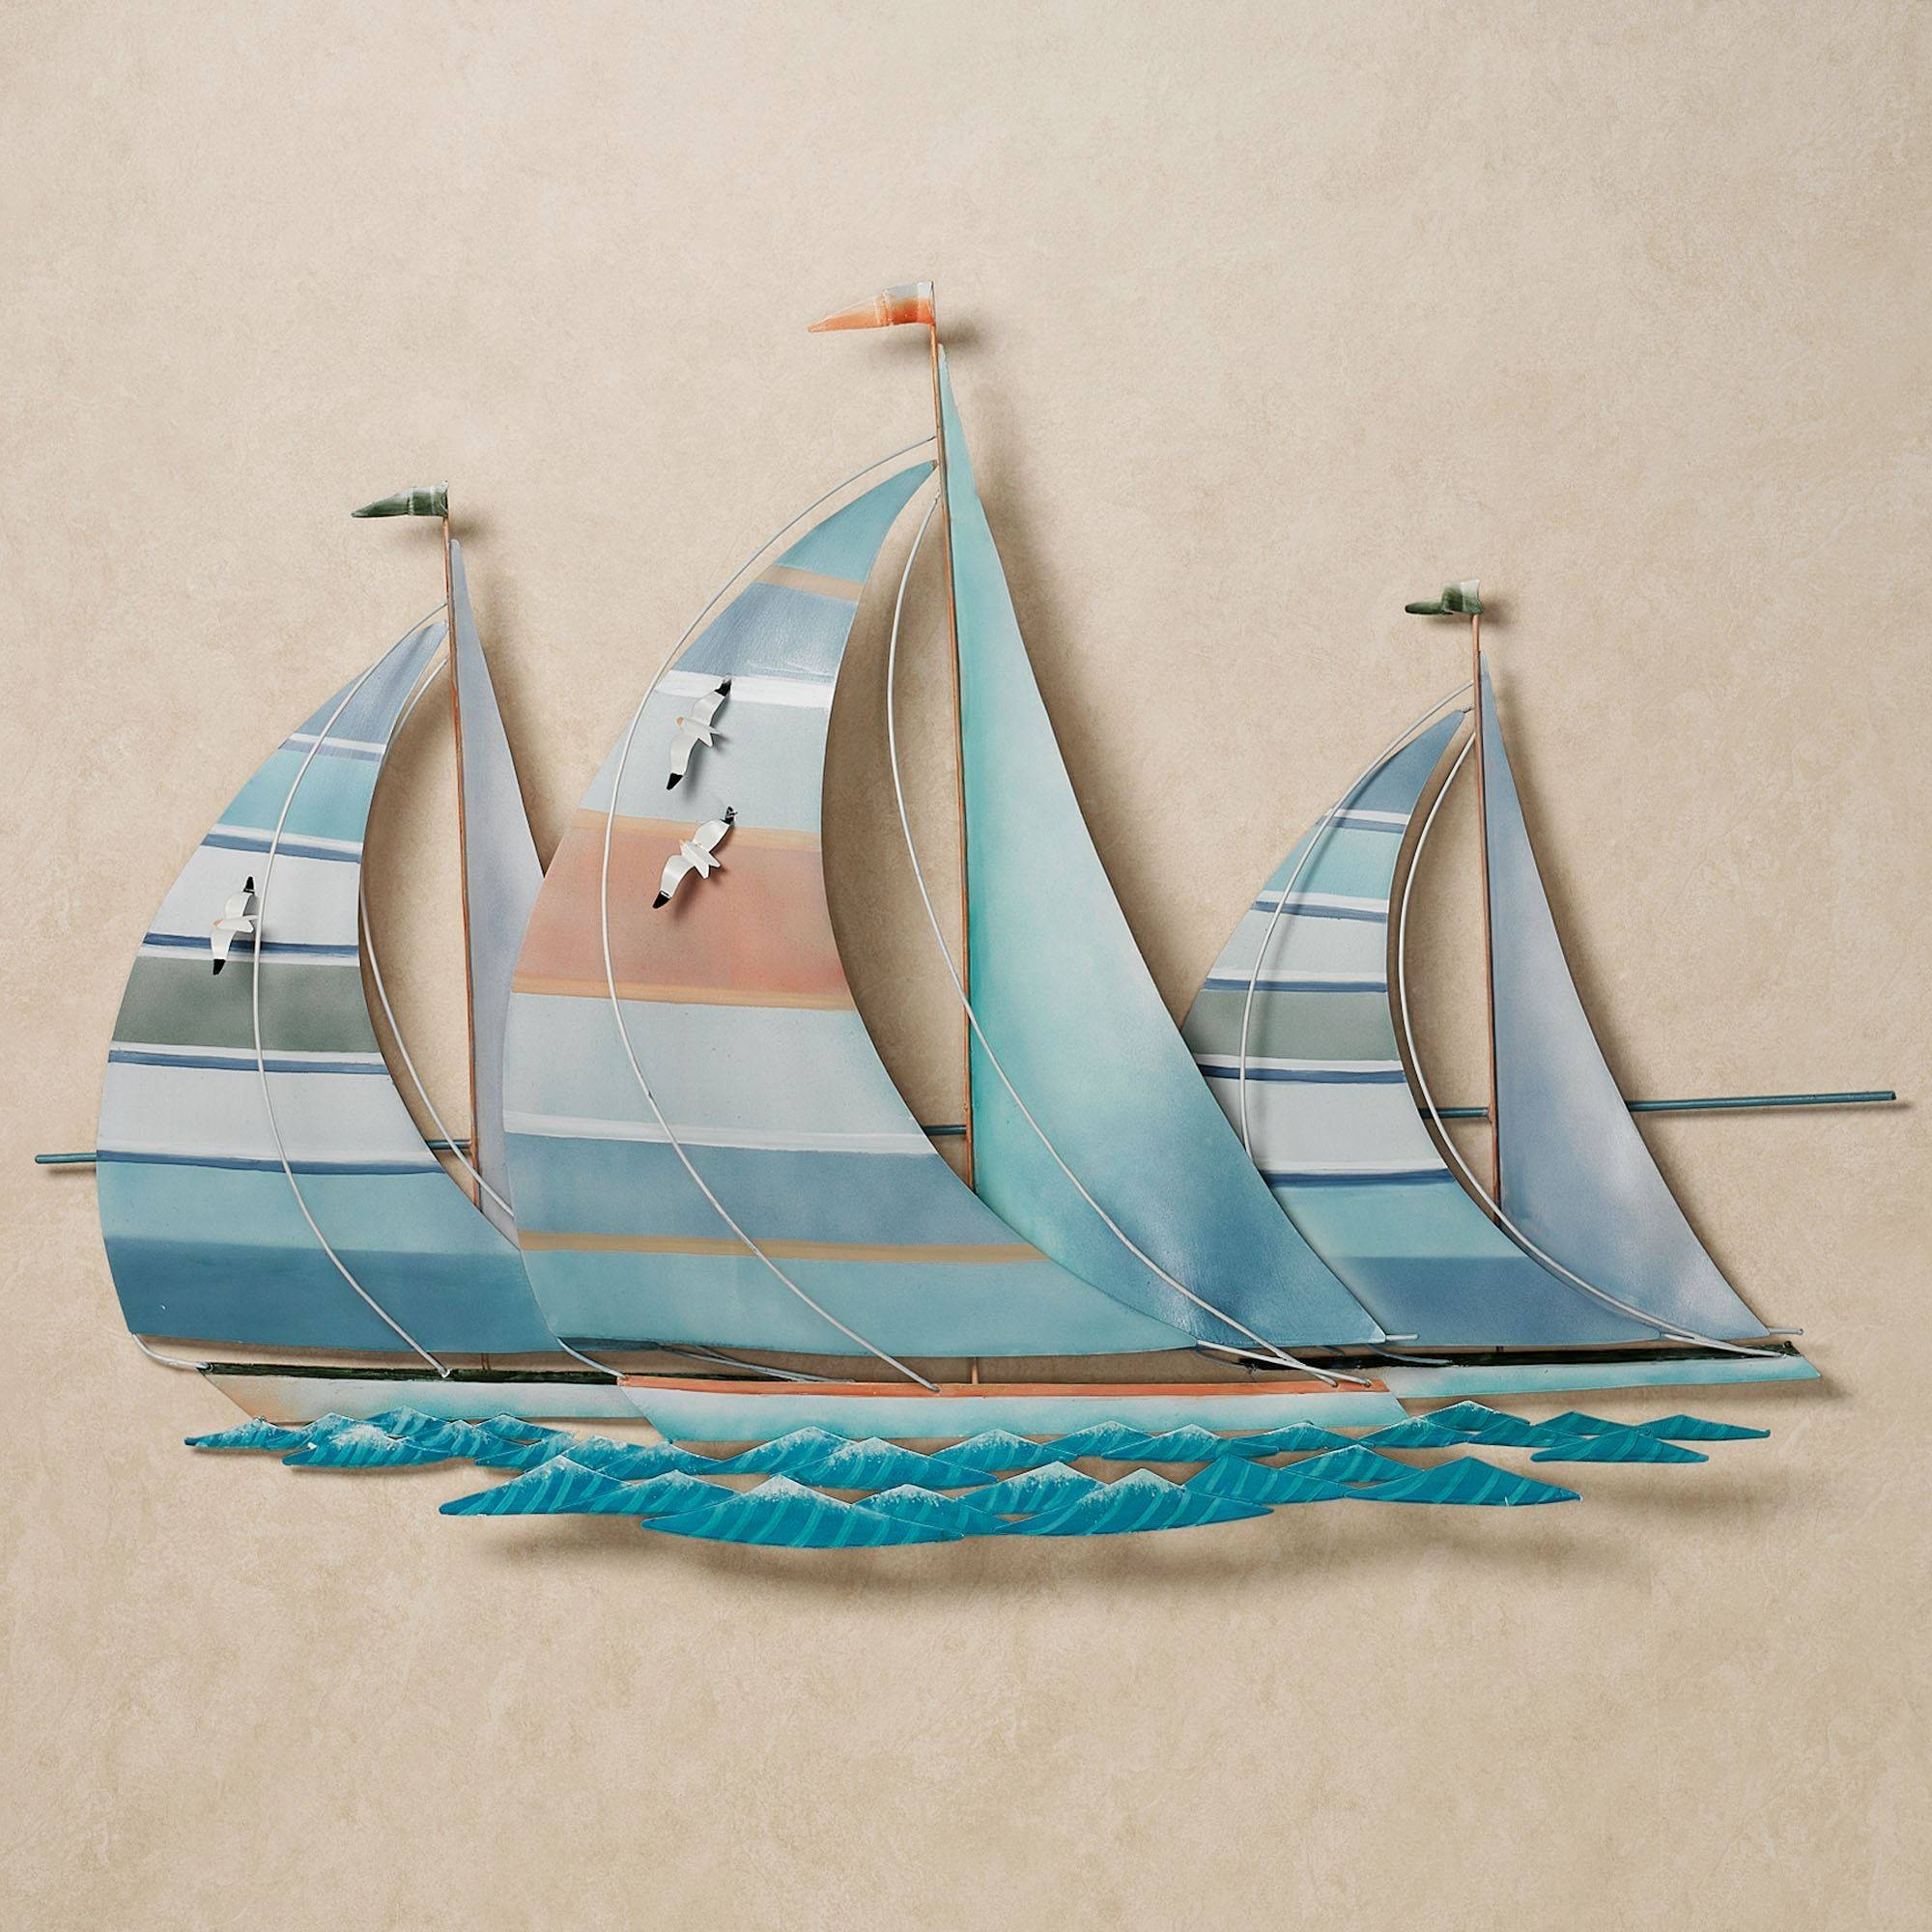 Regatta Finish Line Multi Cool Metal Sailboat Wall Sculpture For Current Metal Sailboat Wall Art (Gallery 3 of 30)